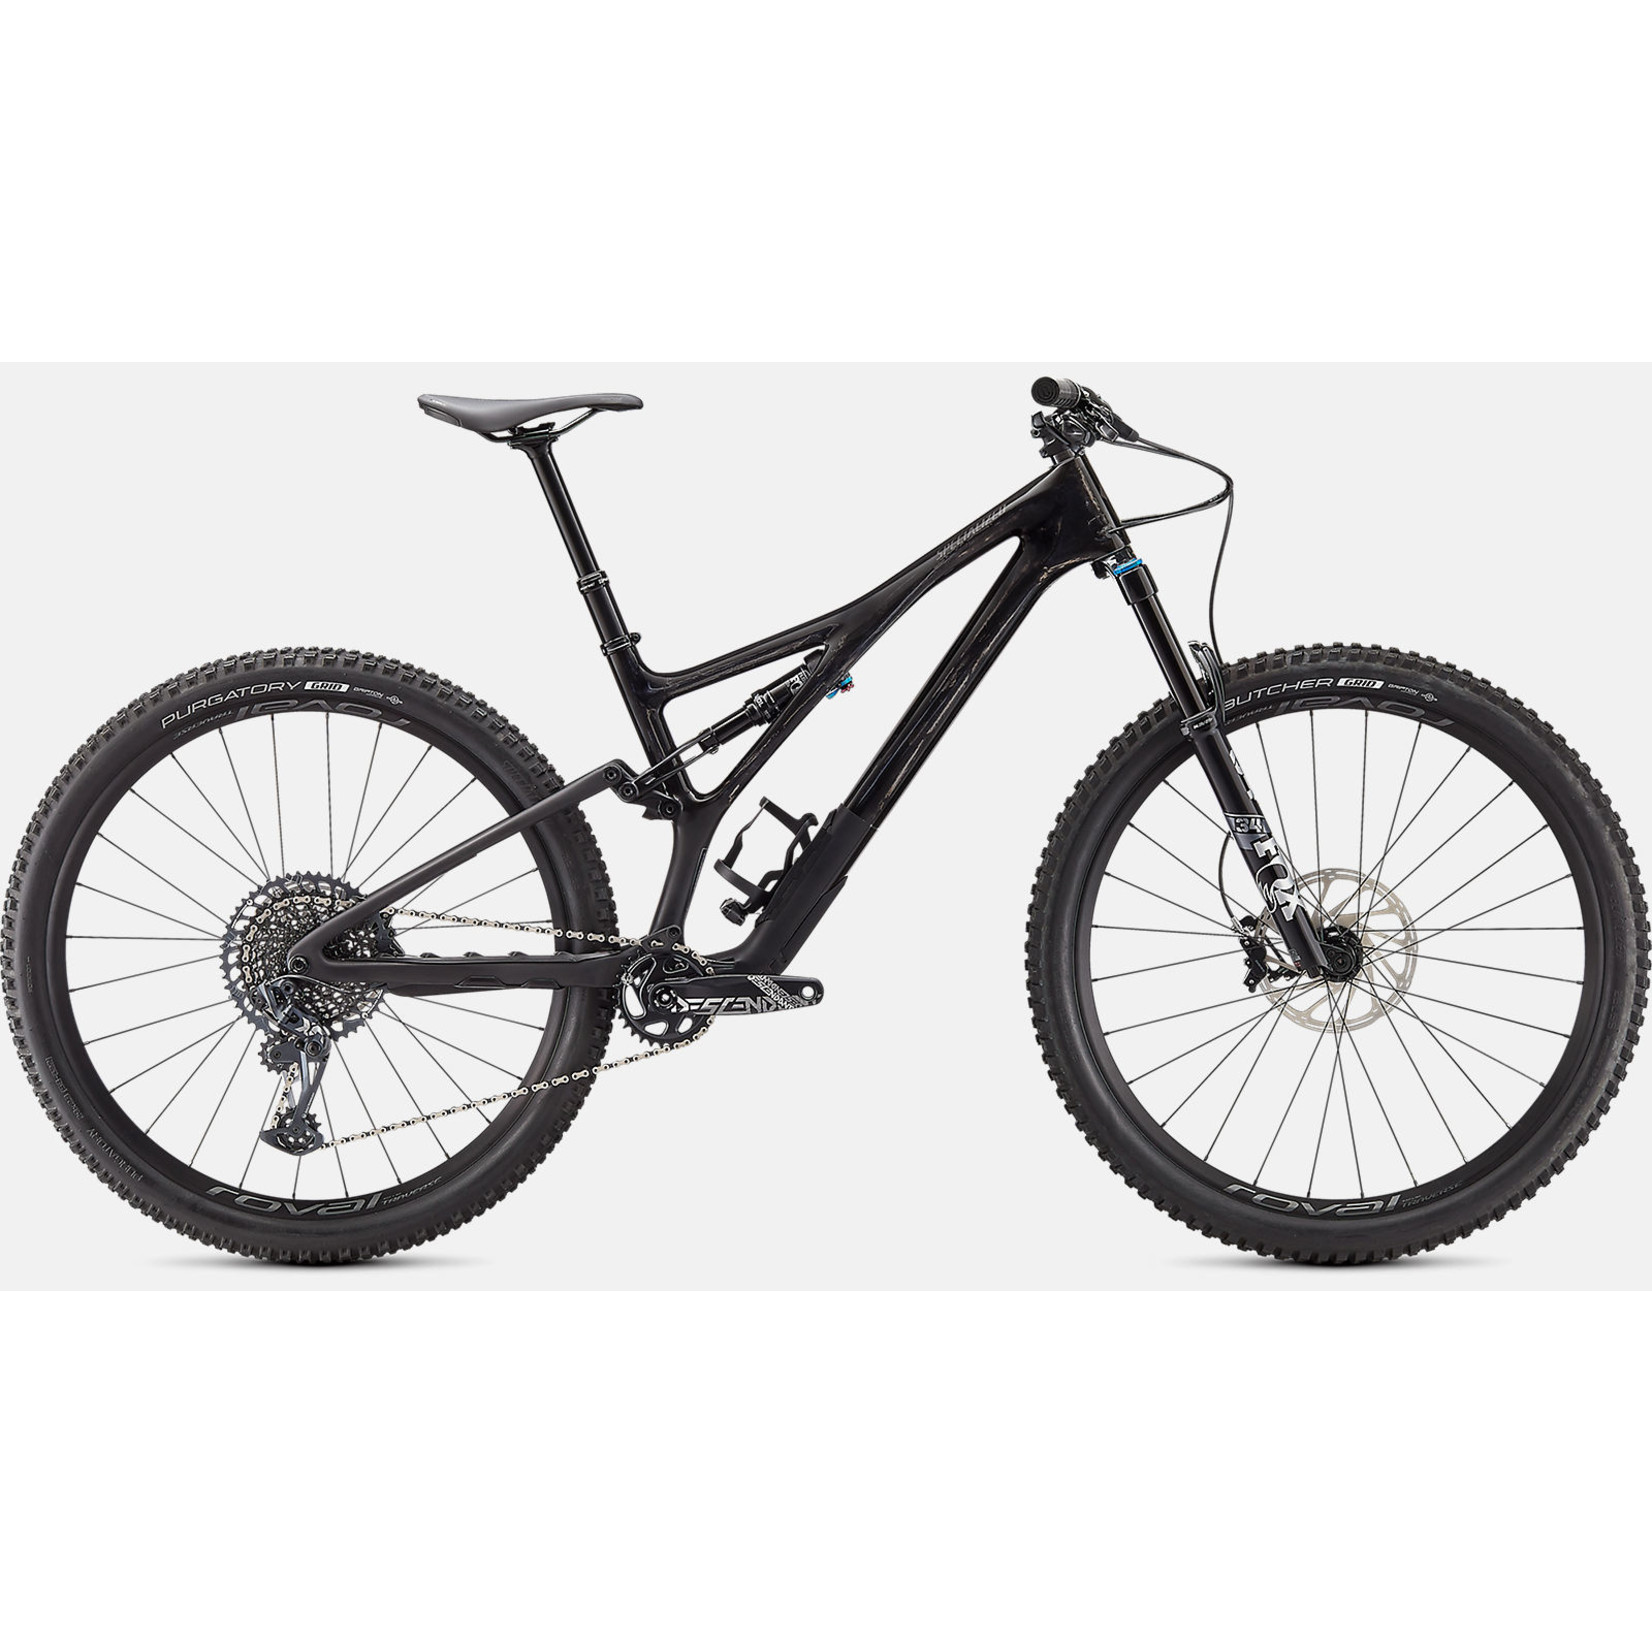 Specialized Specialized Stumpjumper Expert